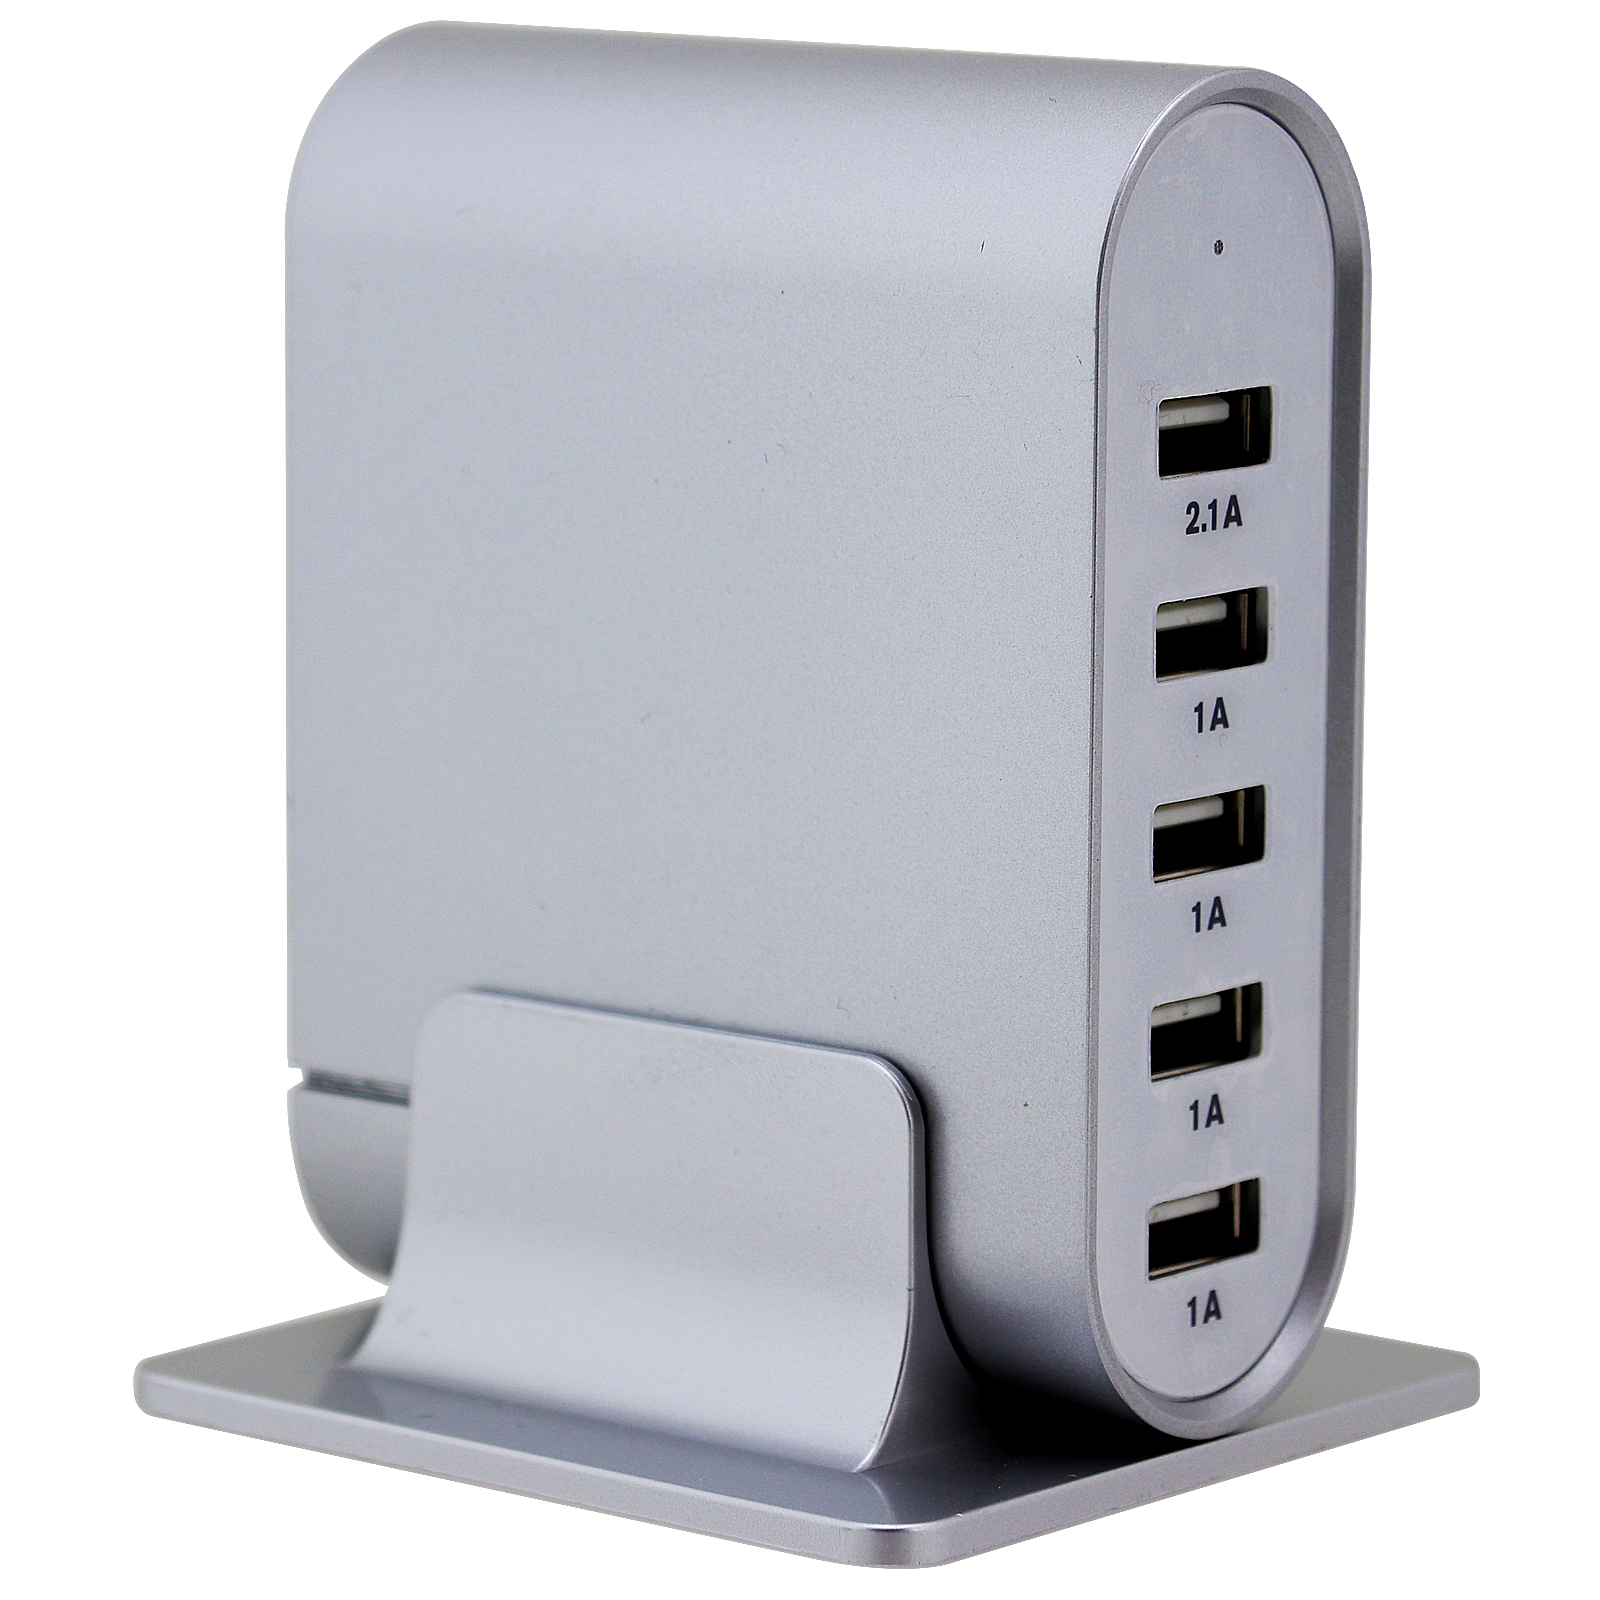 Trexonic 7.1A 5-Port Universal USB Compact Station, Silver